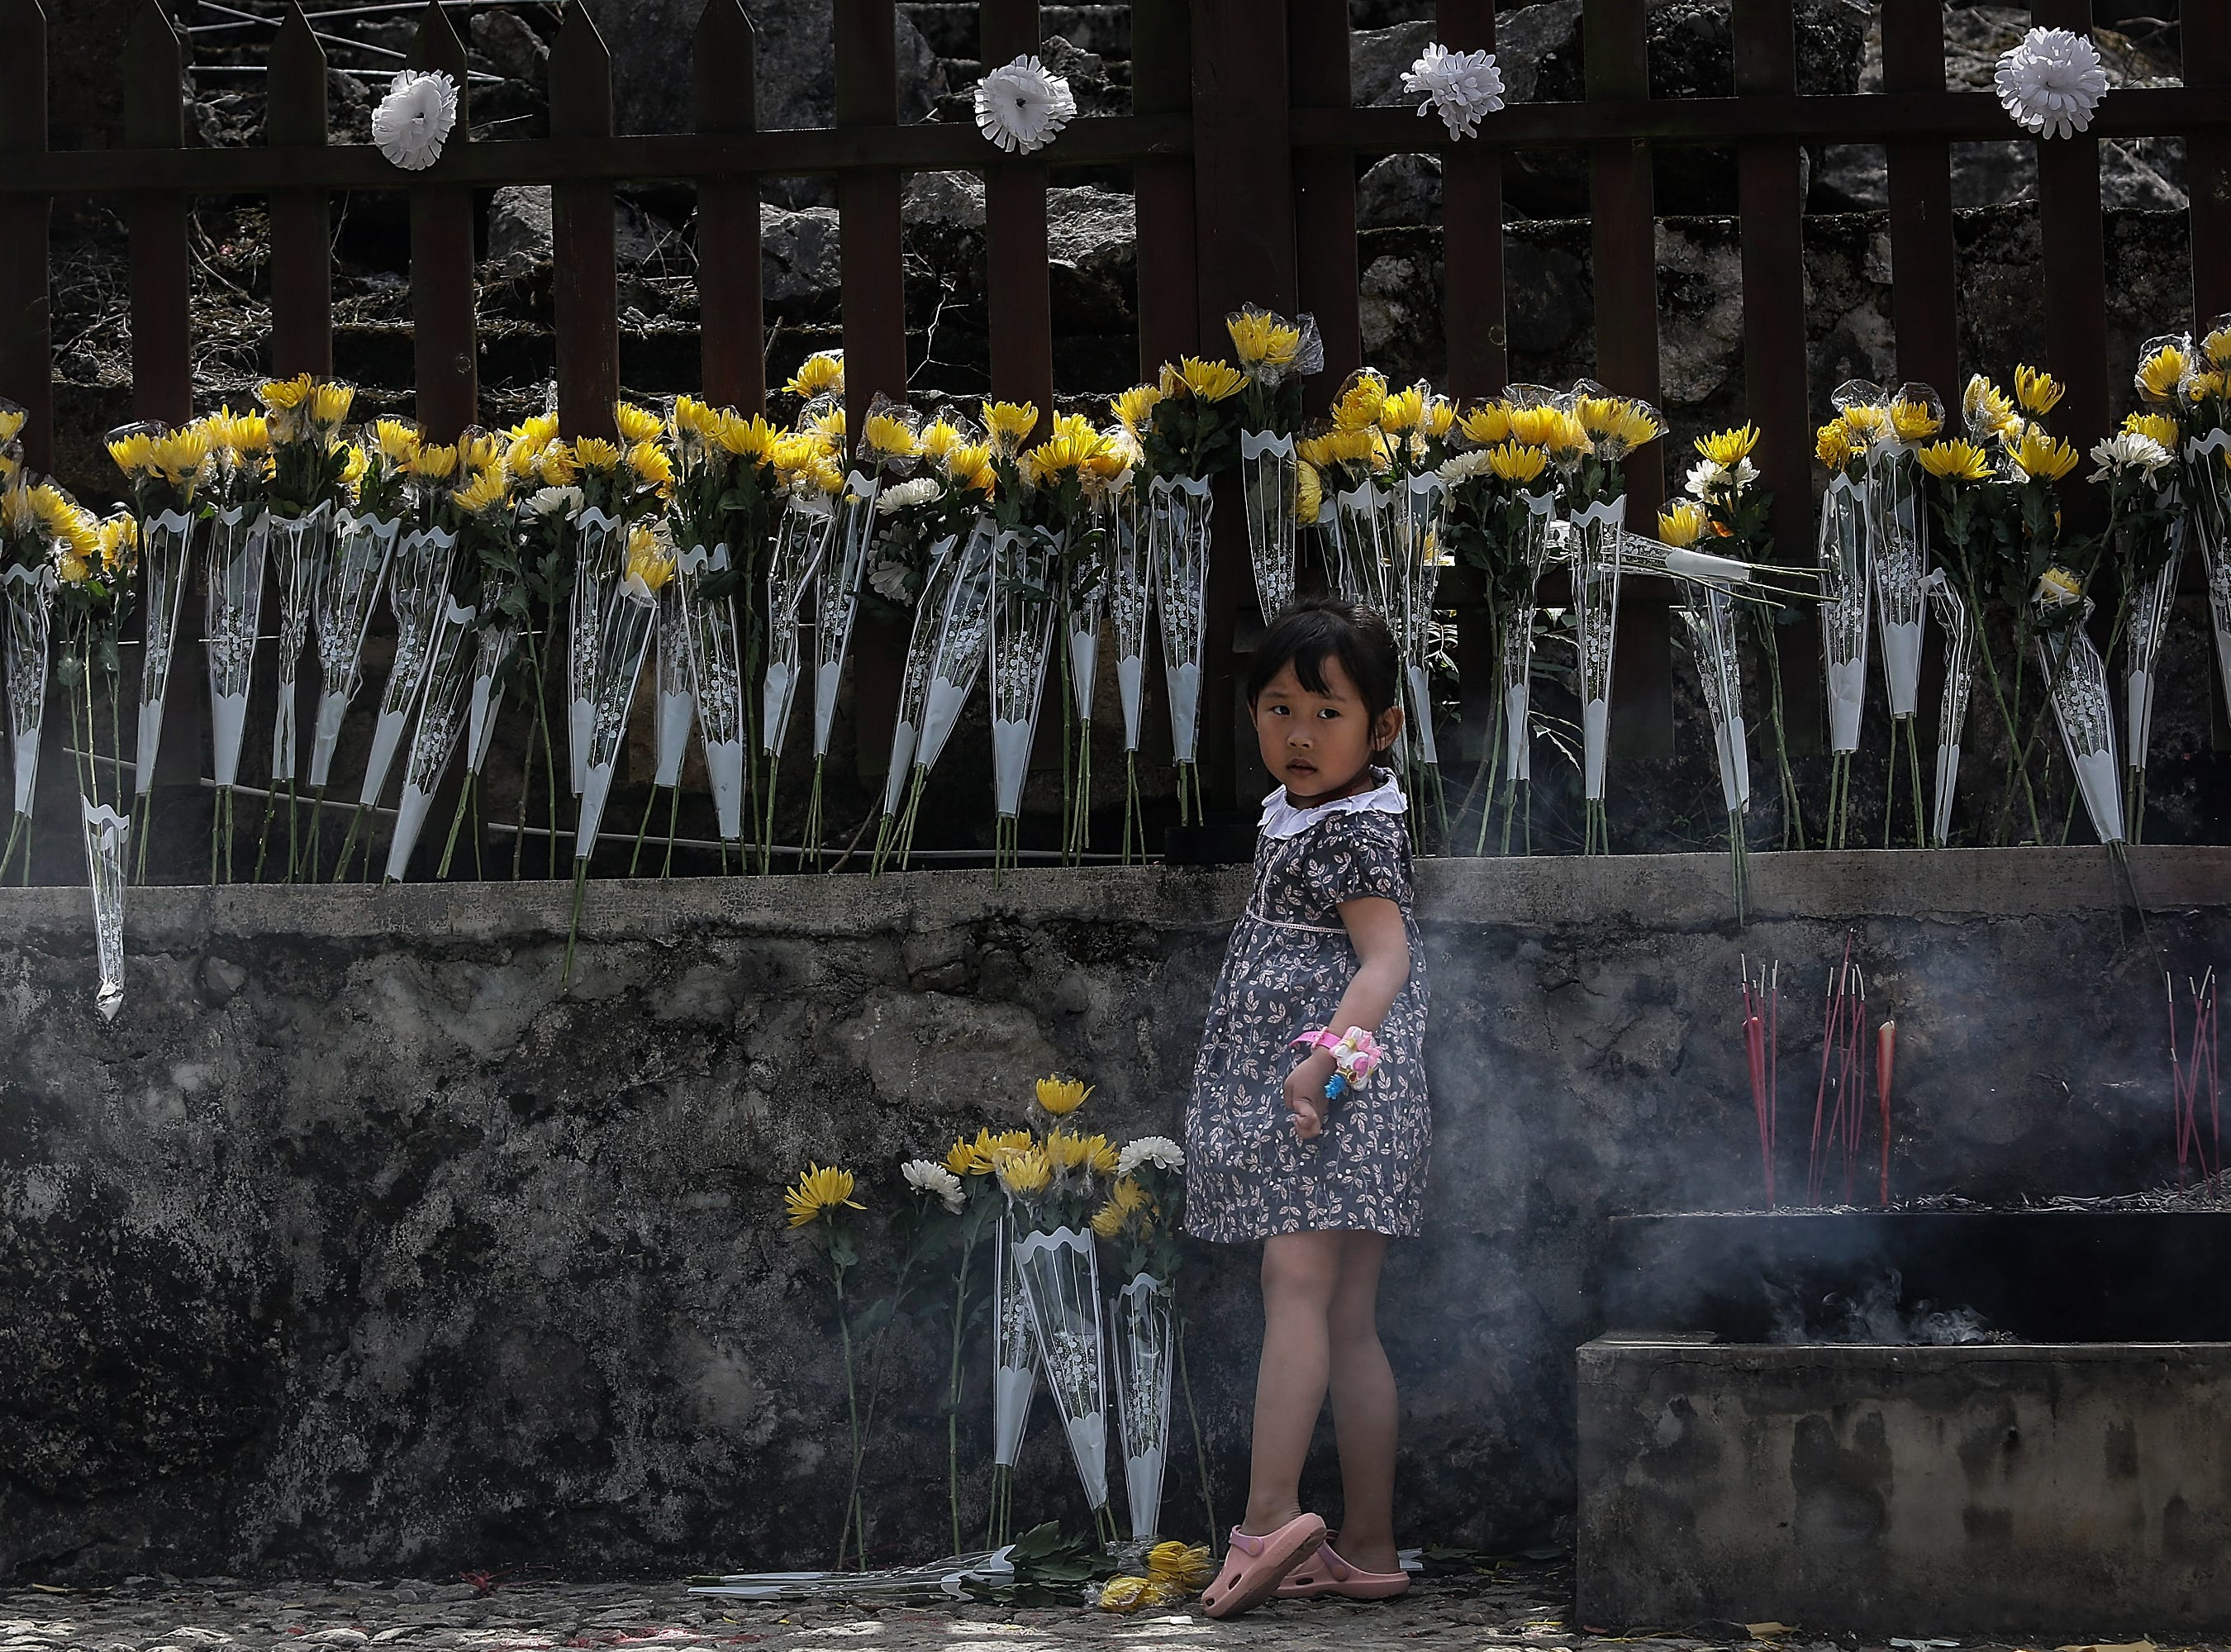 May 12, 2018: A girl lays flowers to mourn for the victims at the ruins of earthquake-hit Beichuan county during the ten-year anniversary in the Sichuan province of China. The Beichuan county was relocated a decade after it was destroyed by the May 12, 2008 earthquake in which more than 15,000 people died.